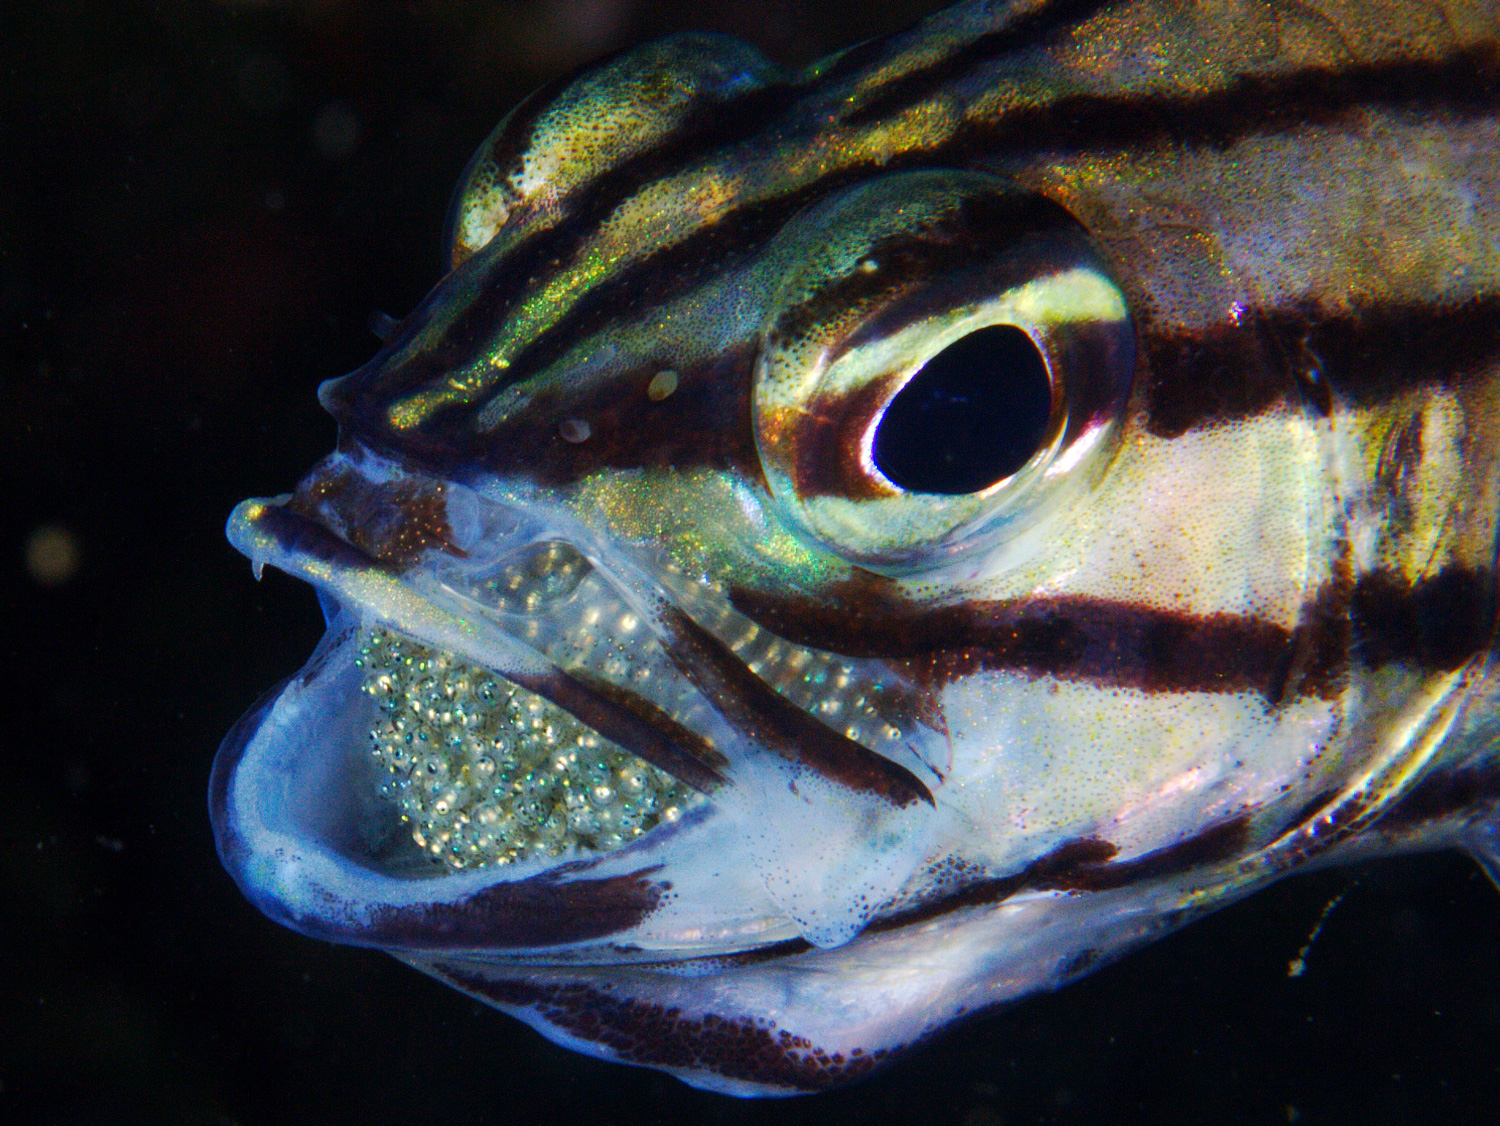 Cardinalfish dads protect their eggs by gingerly carrying them in their mouths.<div class='credit'><strong>Credit:</strong> Cardinalfish dads protect their eggs by gingerly carrying them in their mouths.</div>